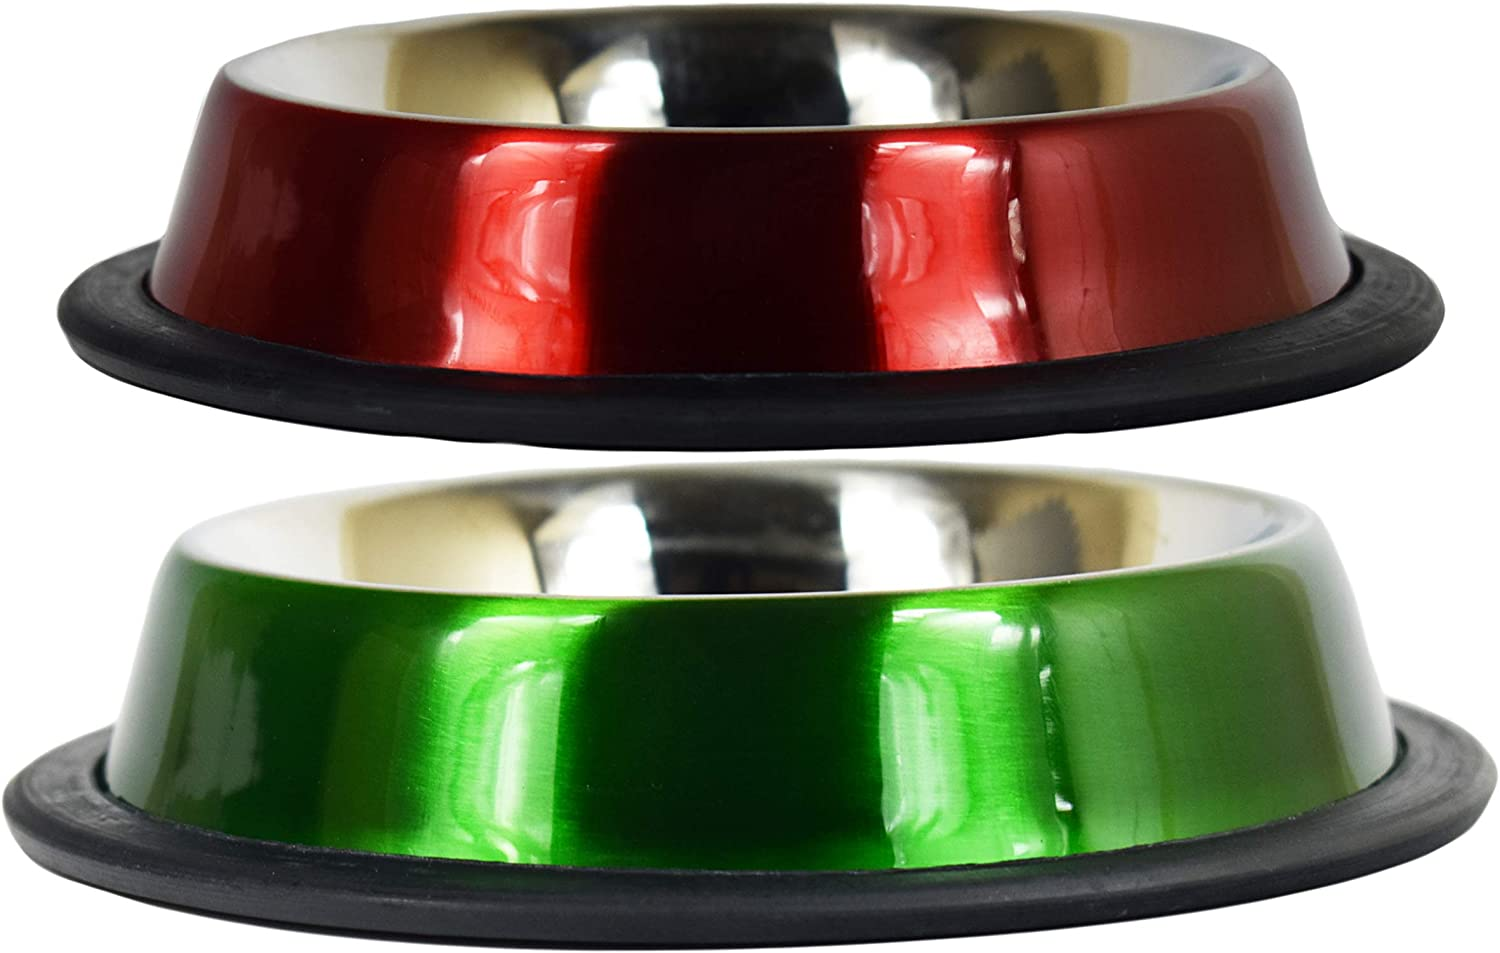 Black Duck Brand Set of Stainless Steal Anti-Skid Pet Bowls! 8oz Pet Bowls Ideal for Home and Travel - 4 Bold Colors!